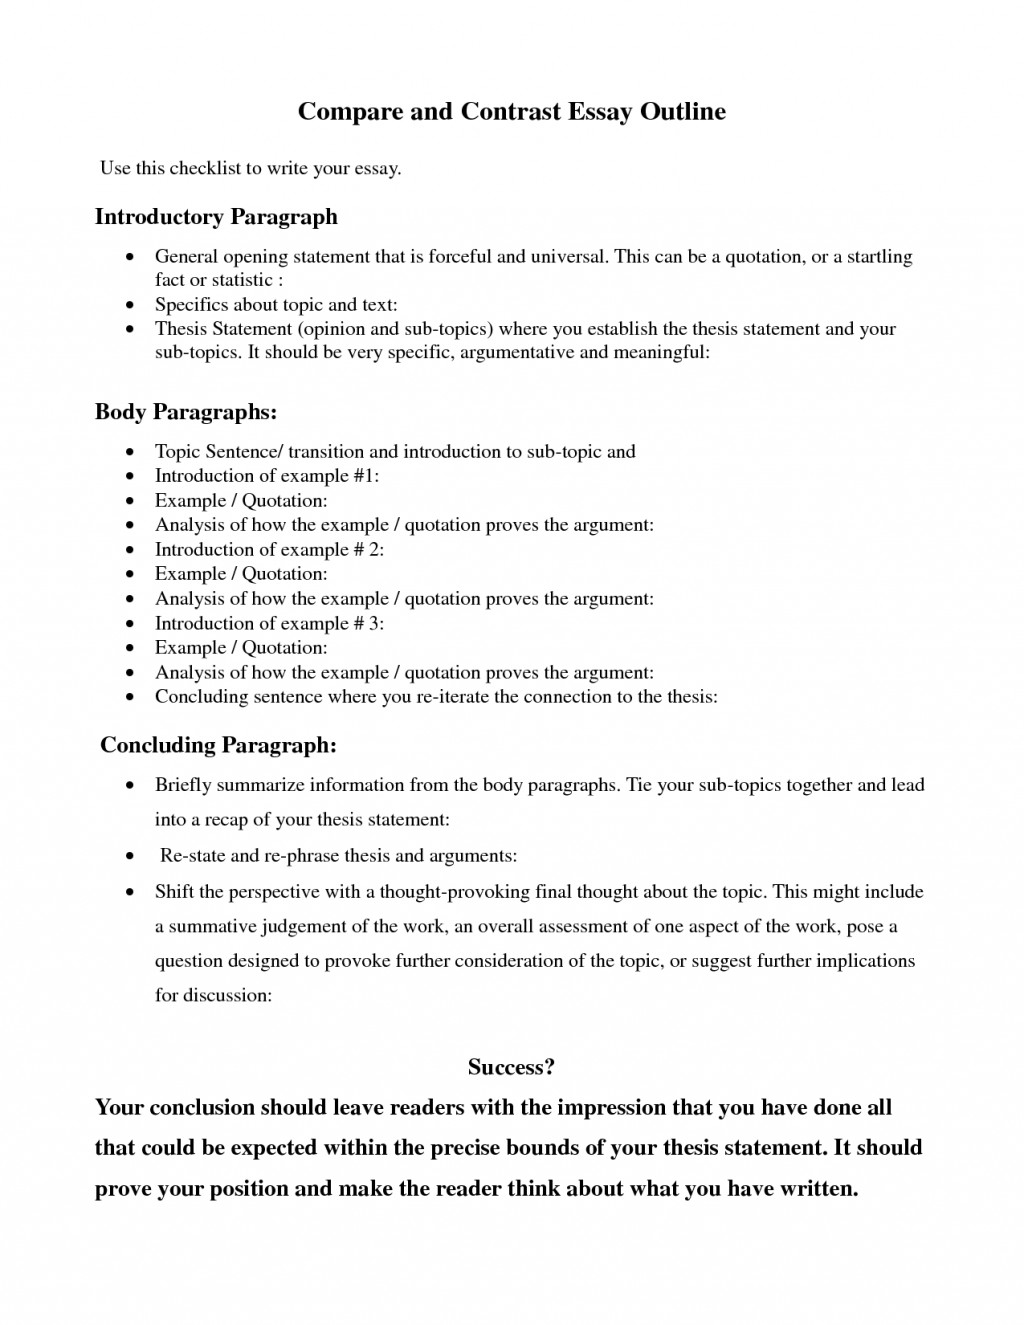 001 Compare And Contrast Essay Example Frightening Prompts 5th Grade Rubric College Ideas 12th Large